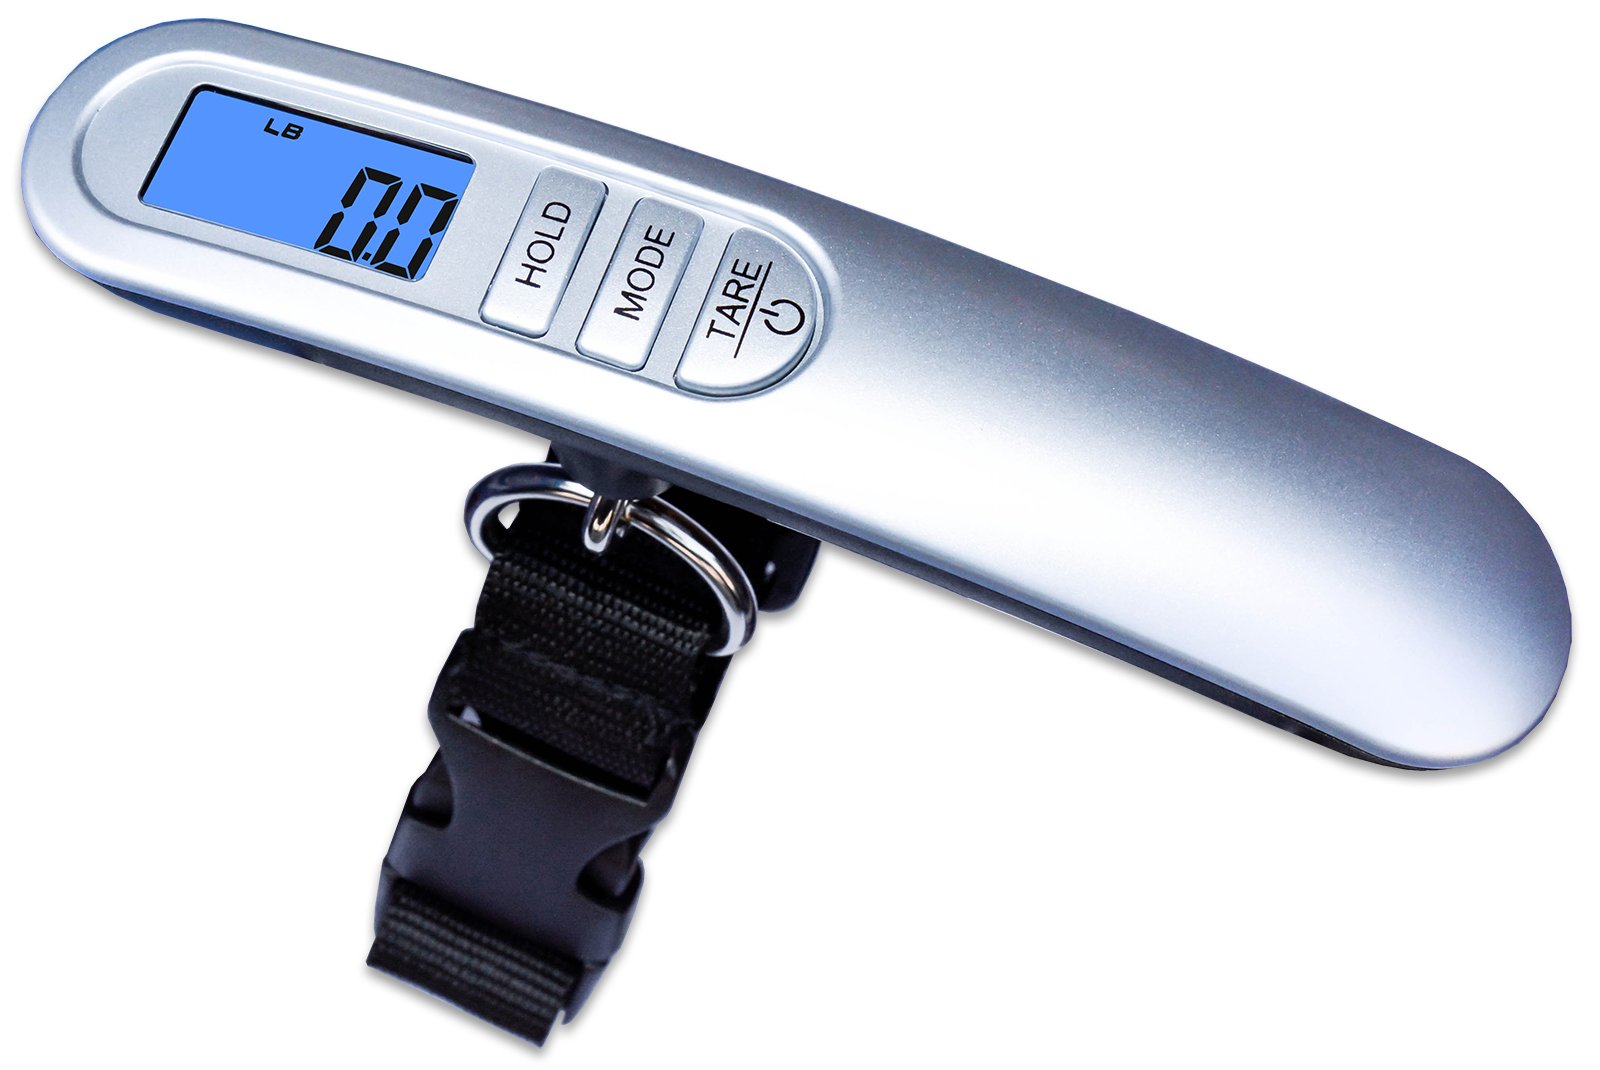 Weighmax HC110 Premium Universal Digital Luggage Scale, 110lb, Silver